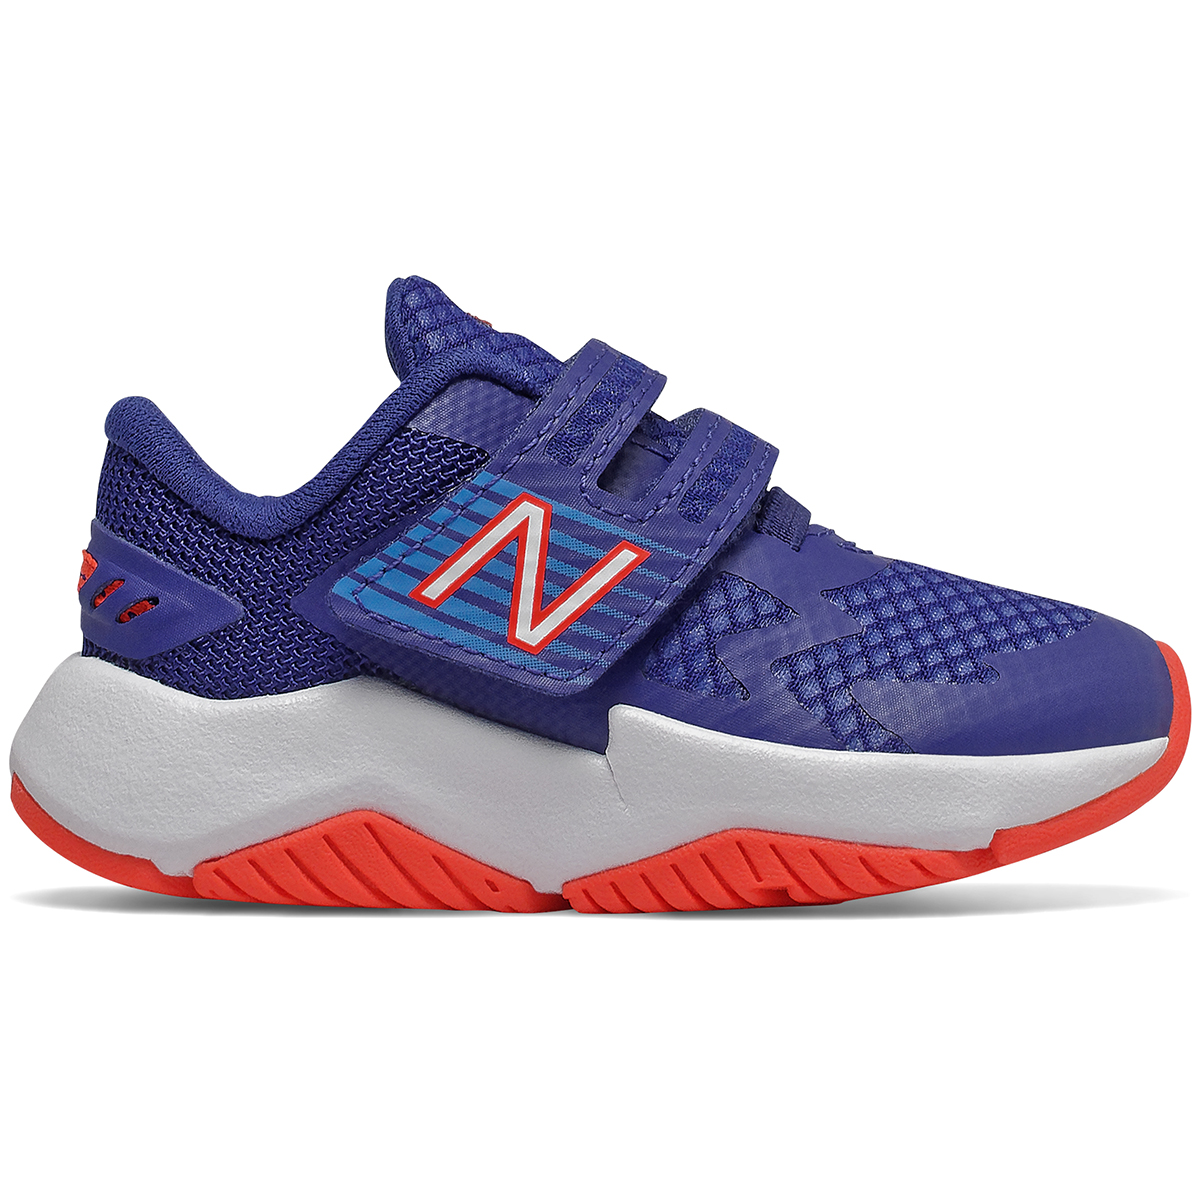 New Balance Infant/toddler Boys' Rave Run Sneakers - Blue, 5